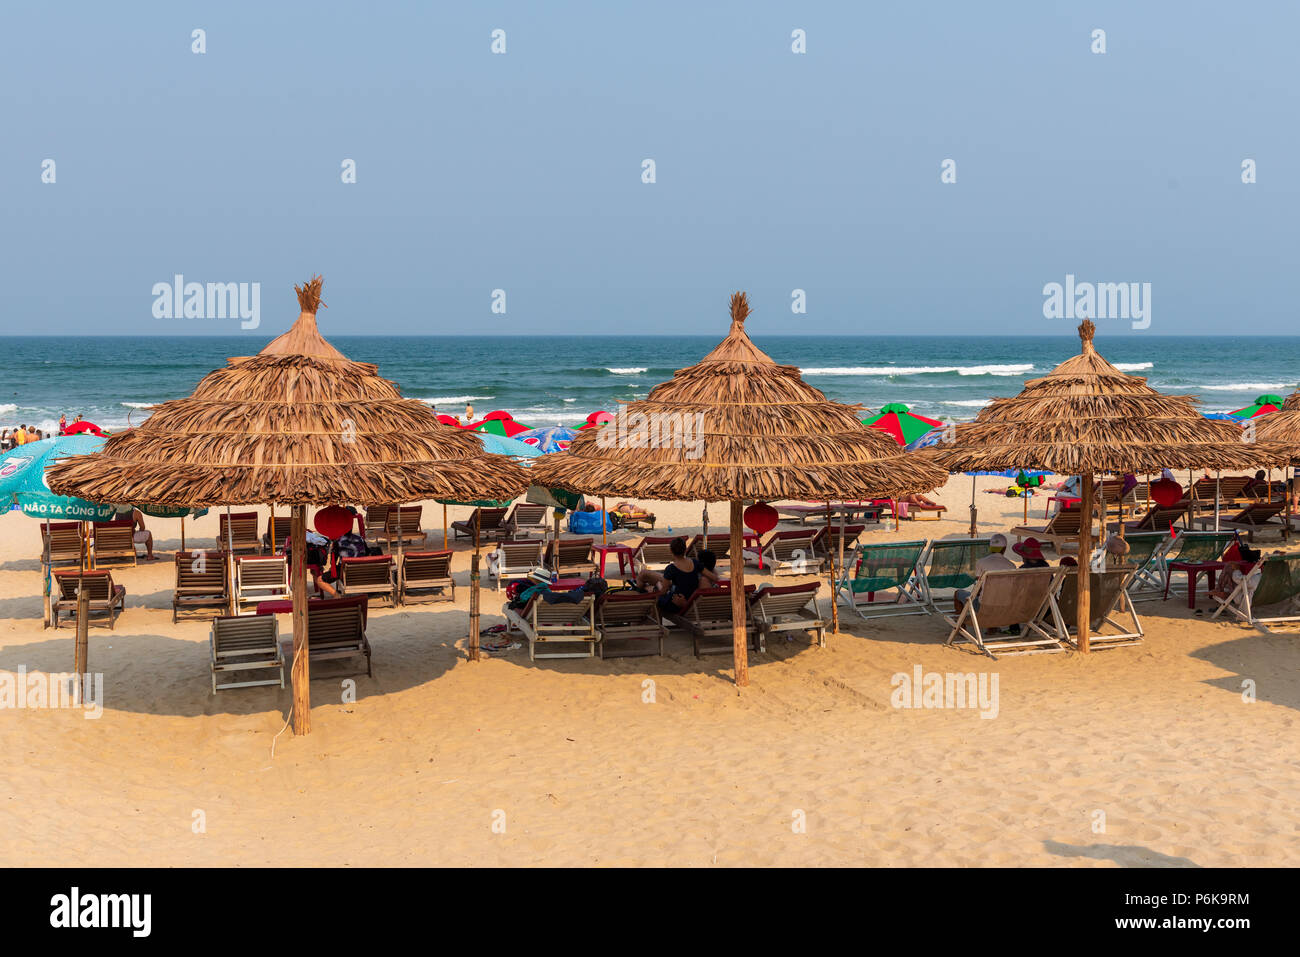 Da Nang, Vietnam--March 23, 2016. Sun bathers relax on lounge chairs under thatched roof umbrellas on China Beach. - Stock Image